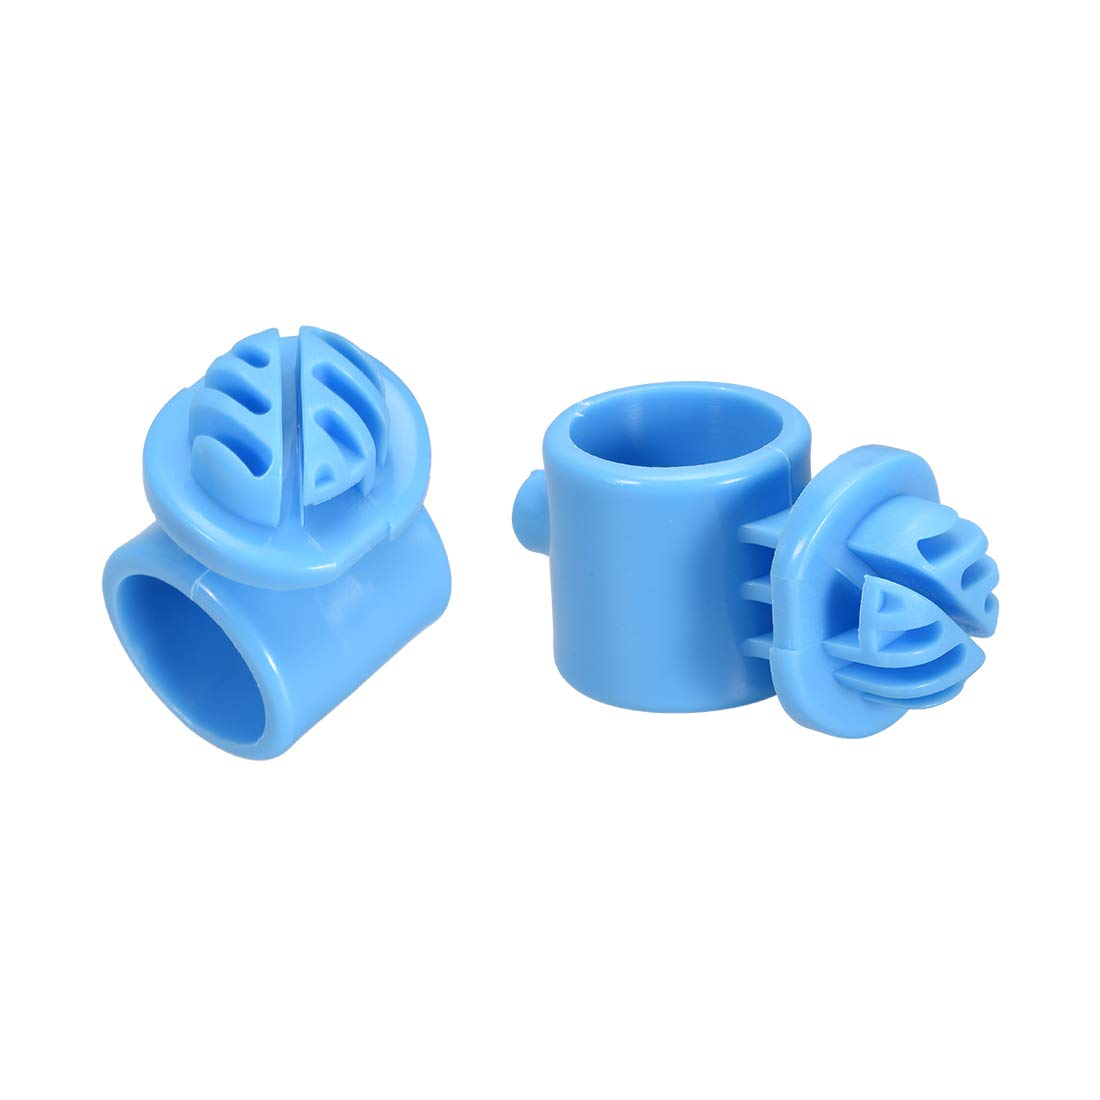 uxcell 20pcs Ring Insulator Wood Post Polyrope Insulator for Electric Fence Wire Blue by uxcell